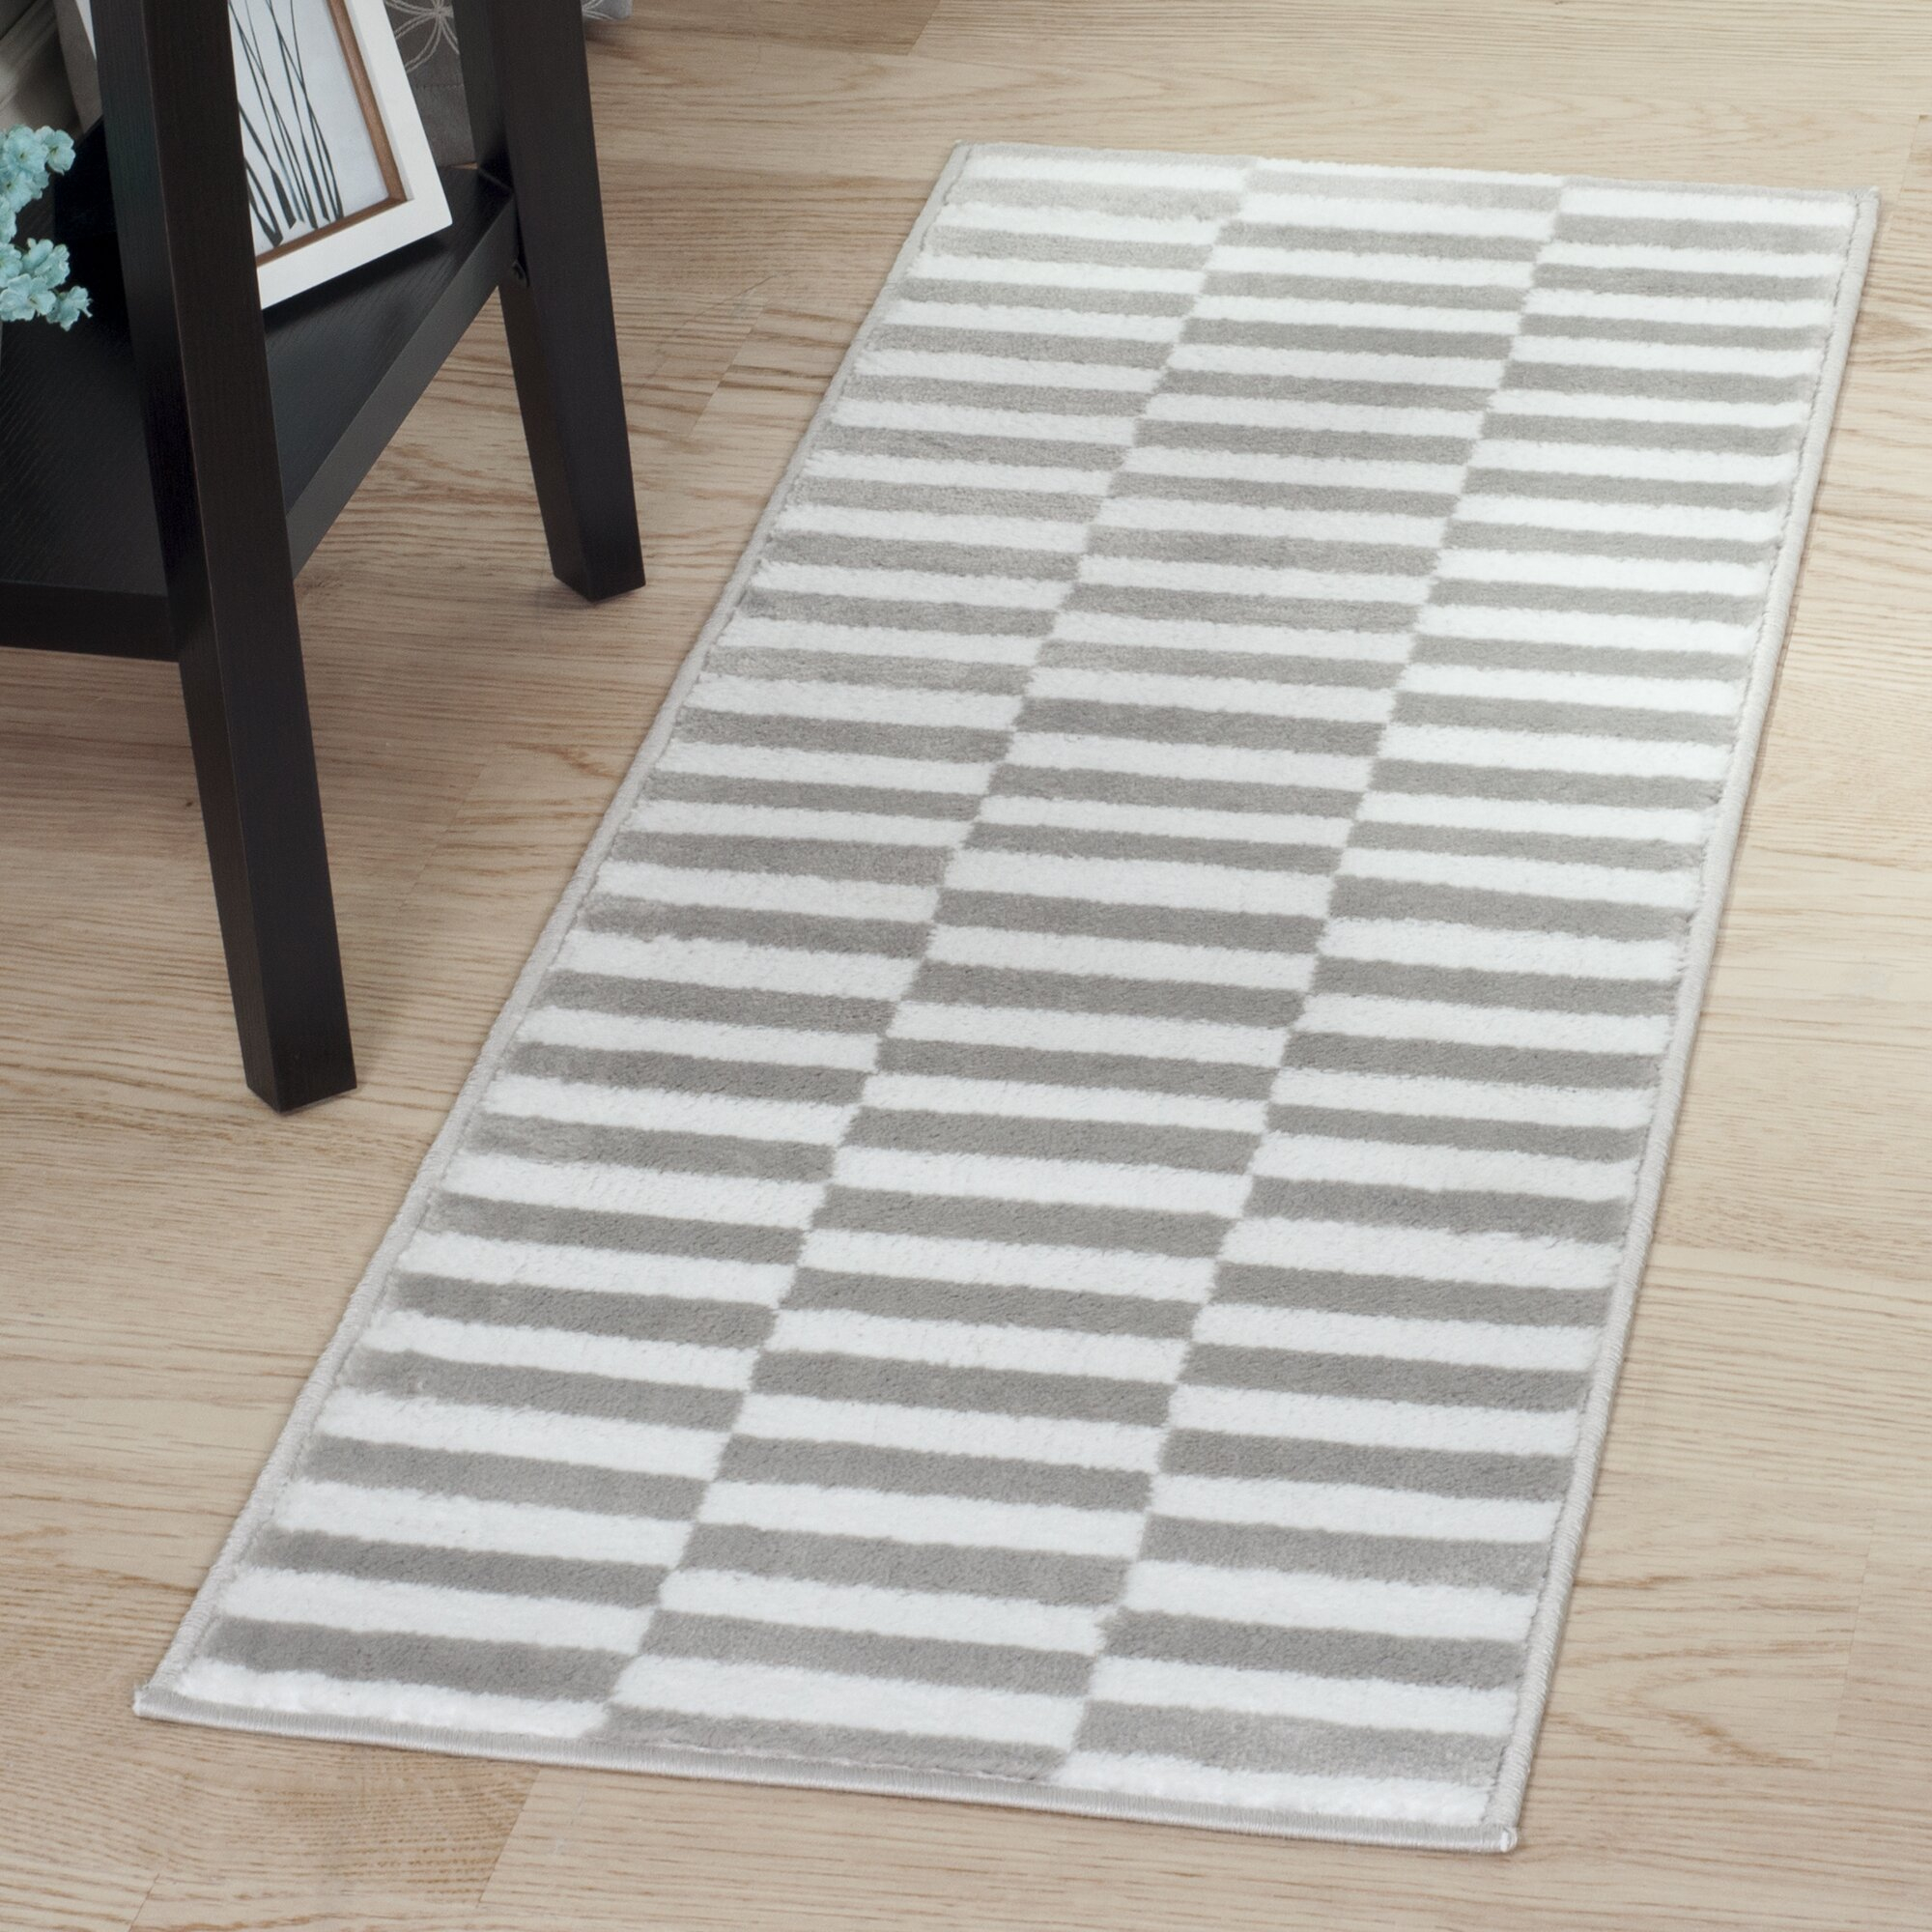 Checked Black Grey Rug: Lavish Home Gray & White Checkered Stripes Area Rug